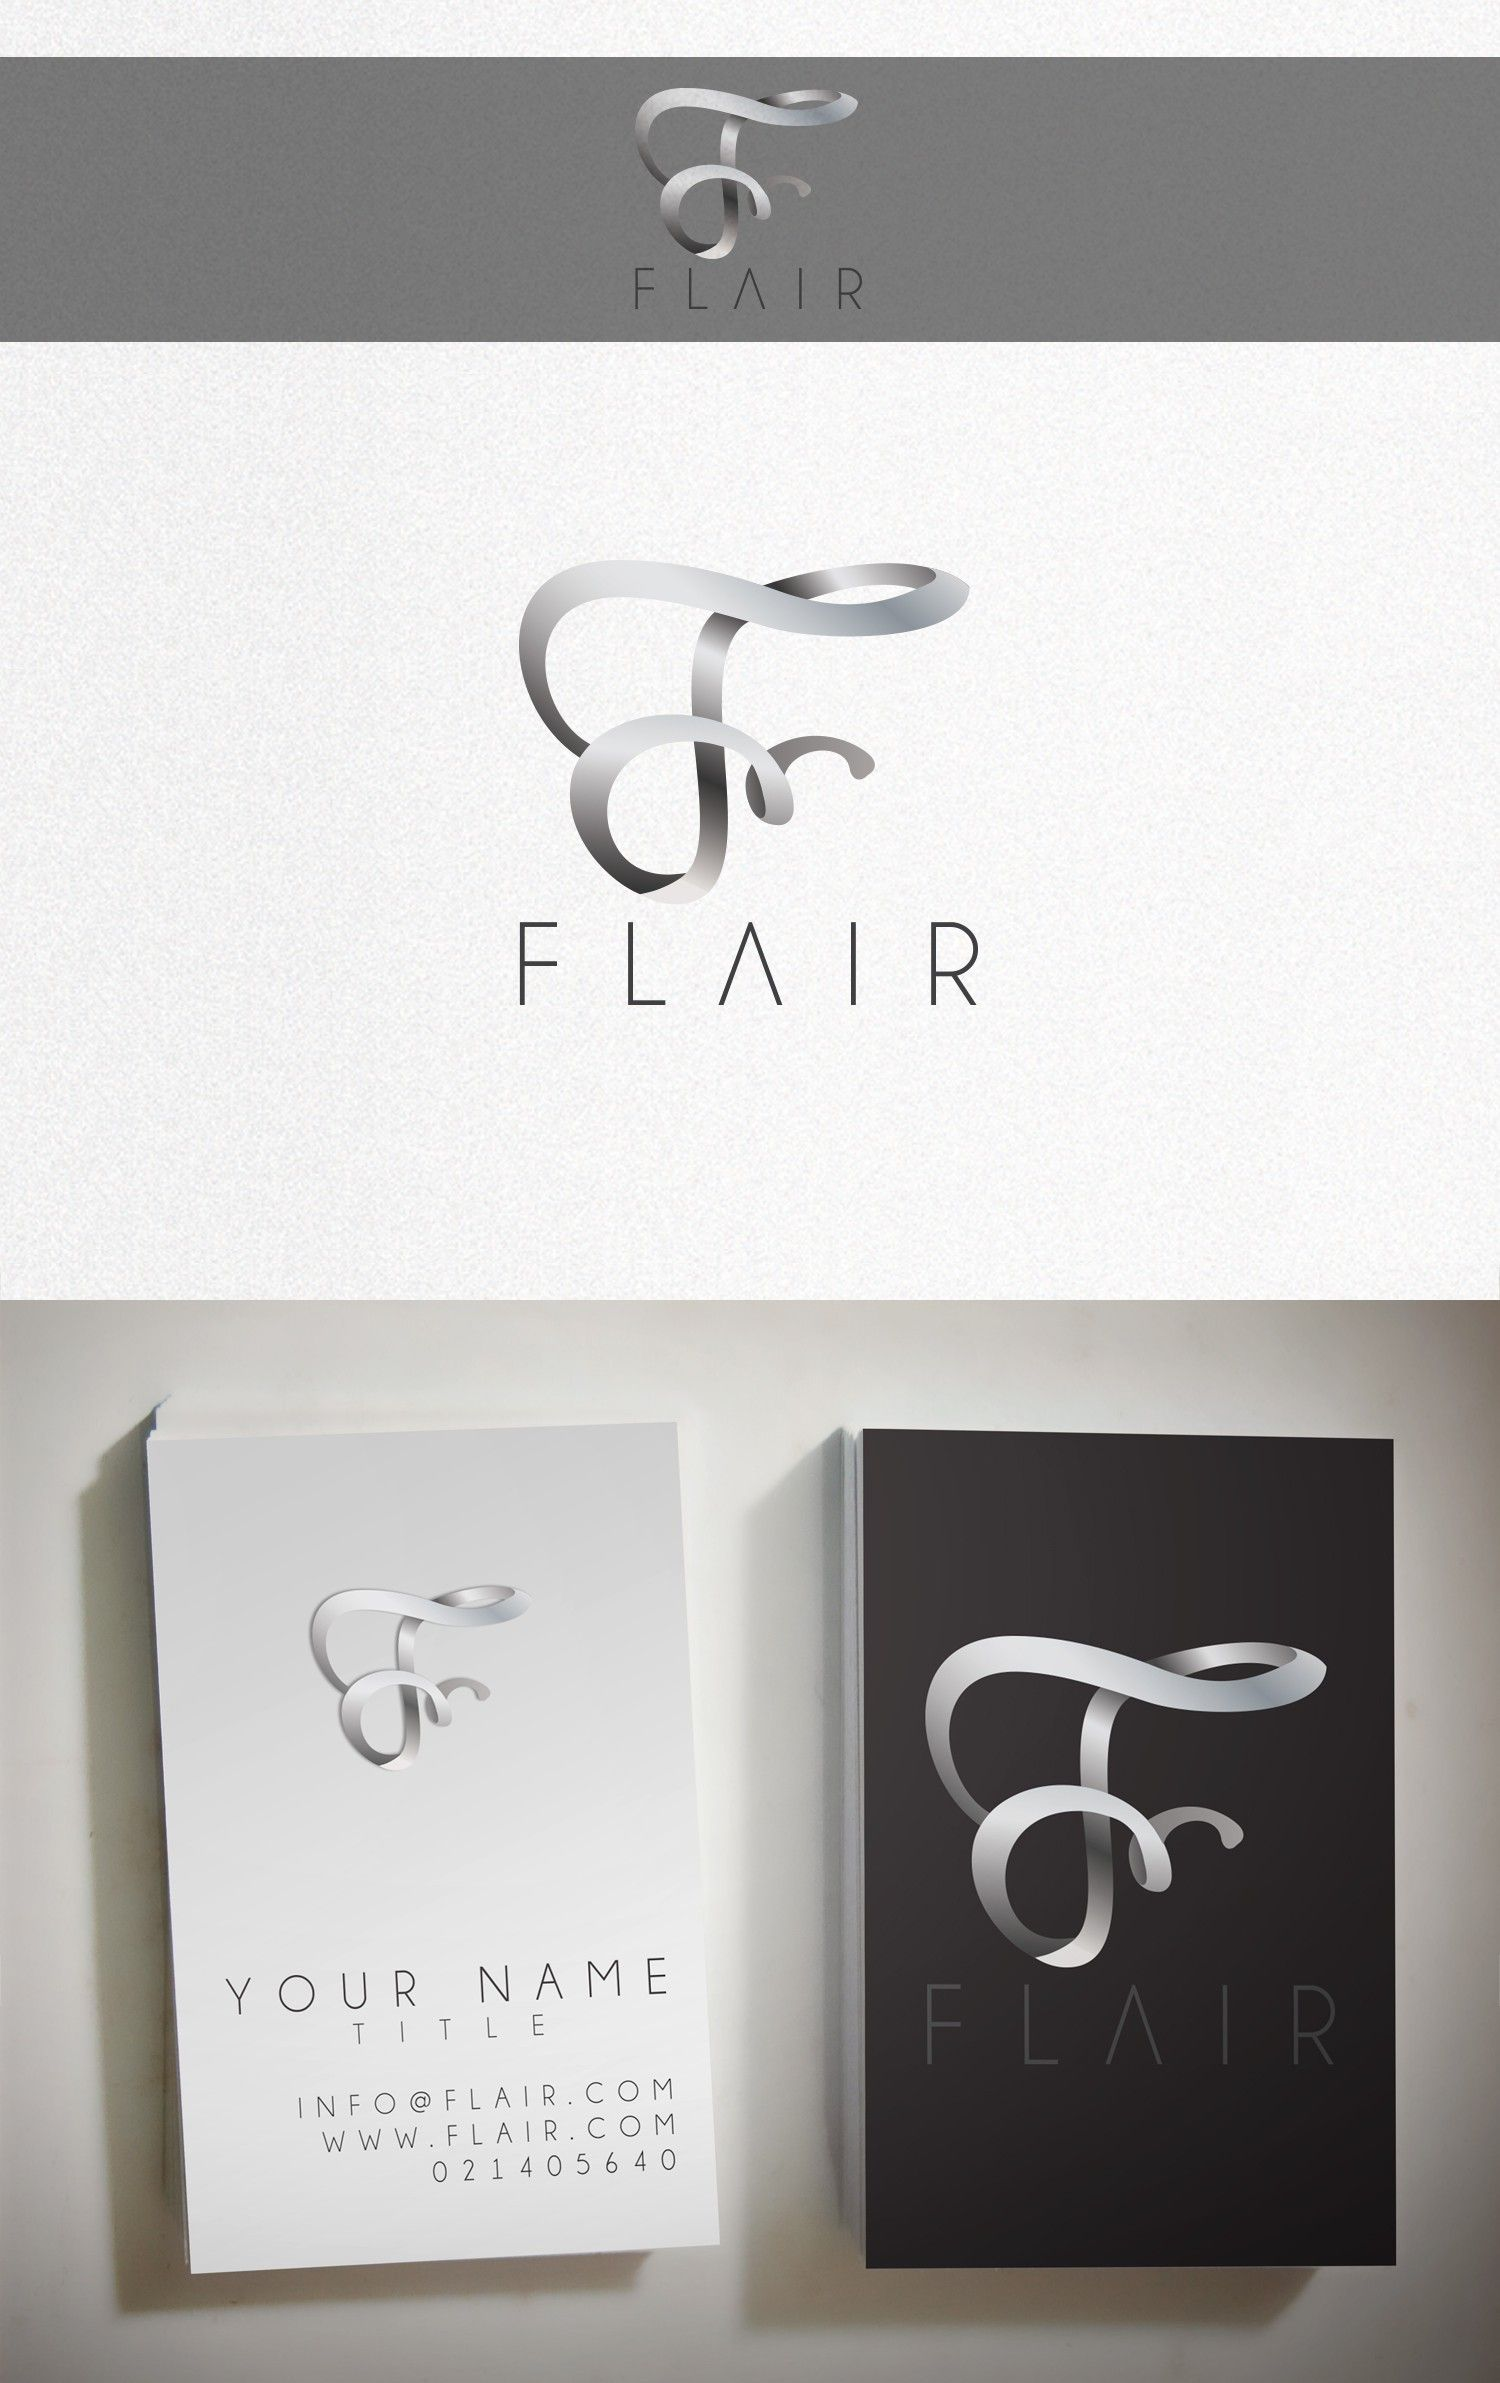 Wordmark logo and business card by RotRed for a fashion brand